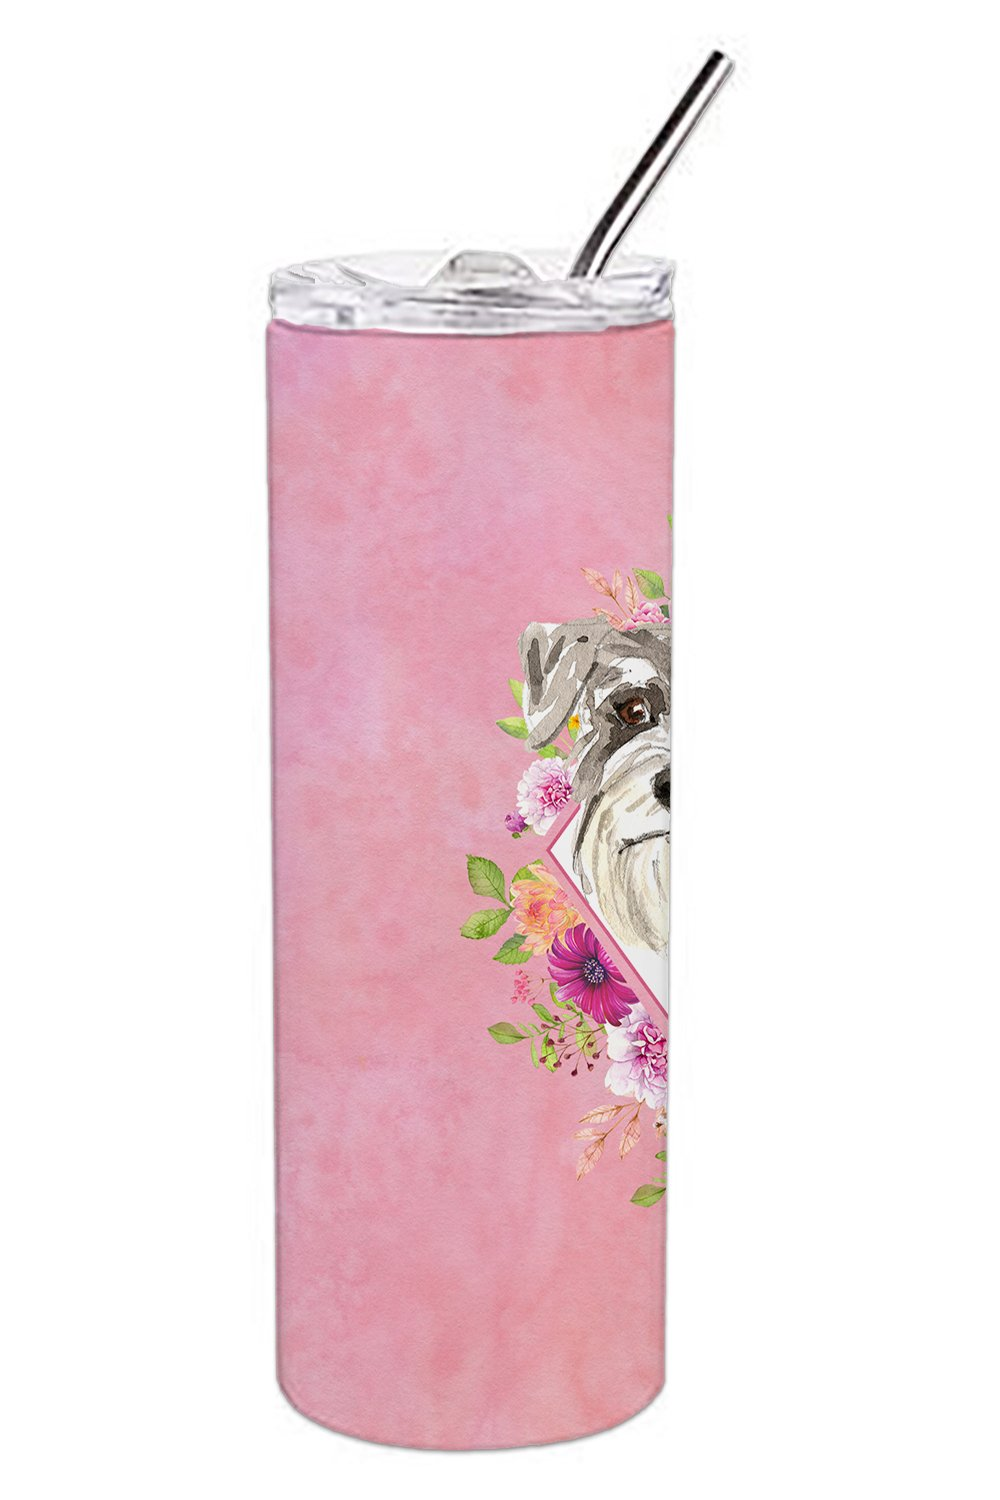 Schnauzer #1 Pink Flowers Double Walled Stainless Steel 20 oz Skinny Tumbler CK4215TBL20 by Caroline's Treasures